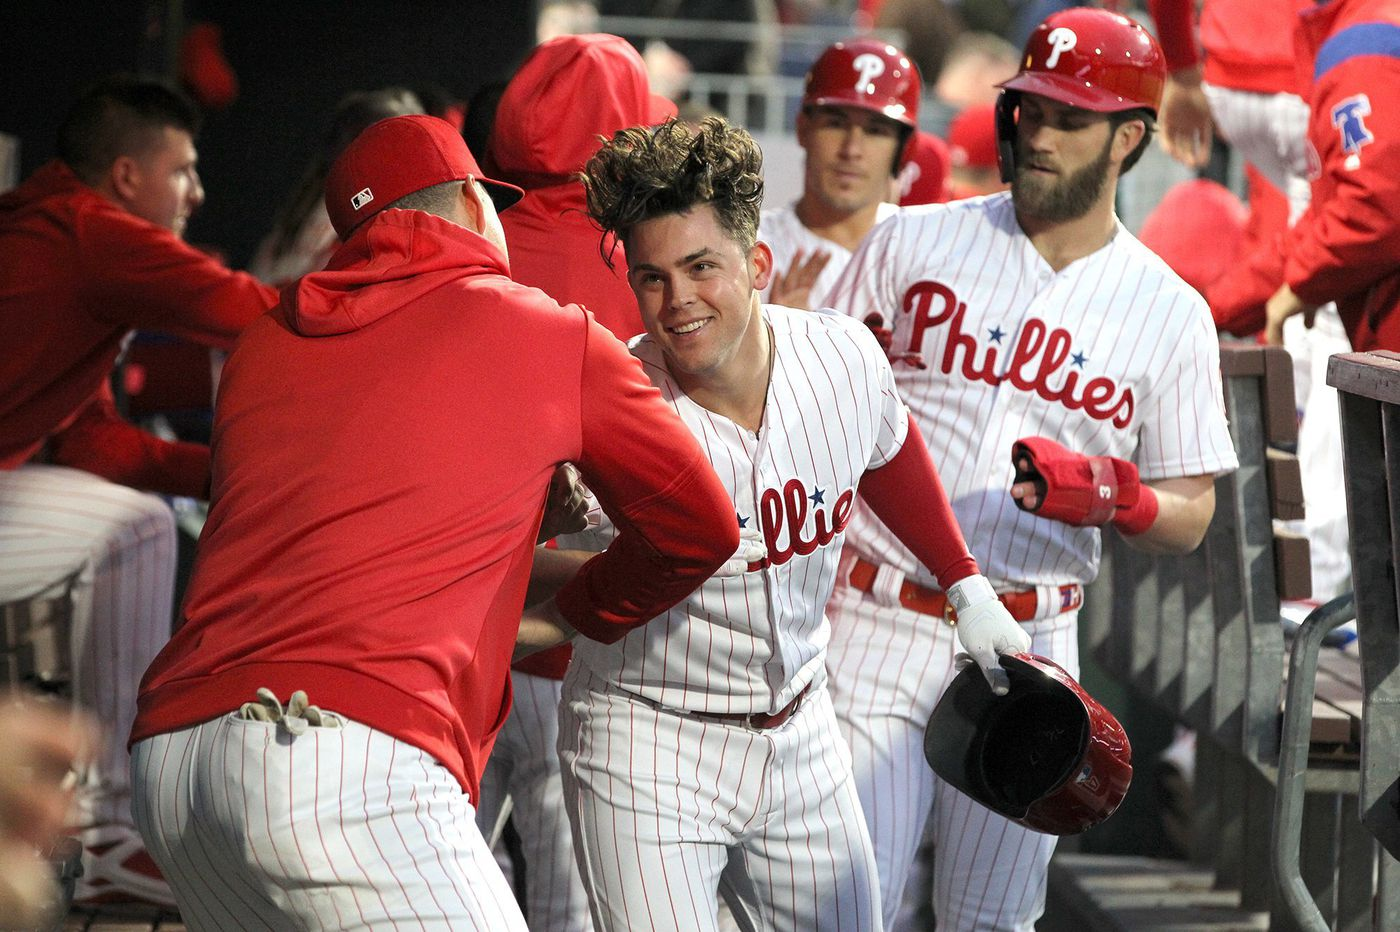 Phillies' Scott Kingery close to returning from strained right hamstring, but David Robertson won't be as quick